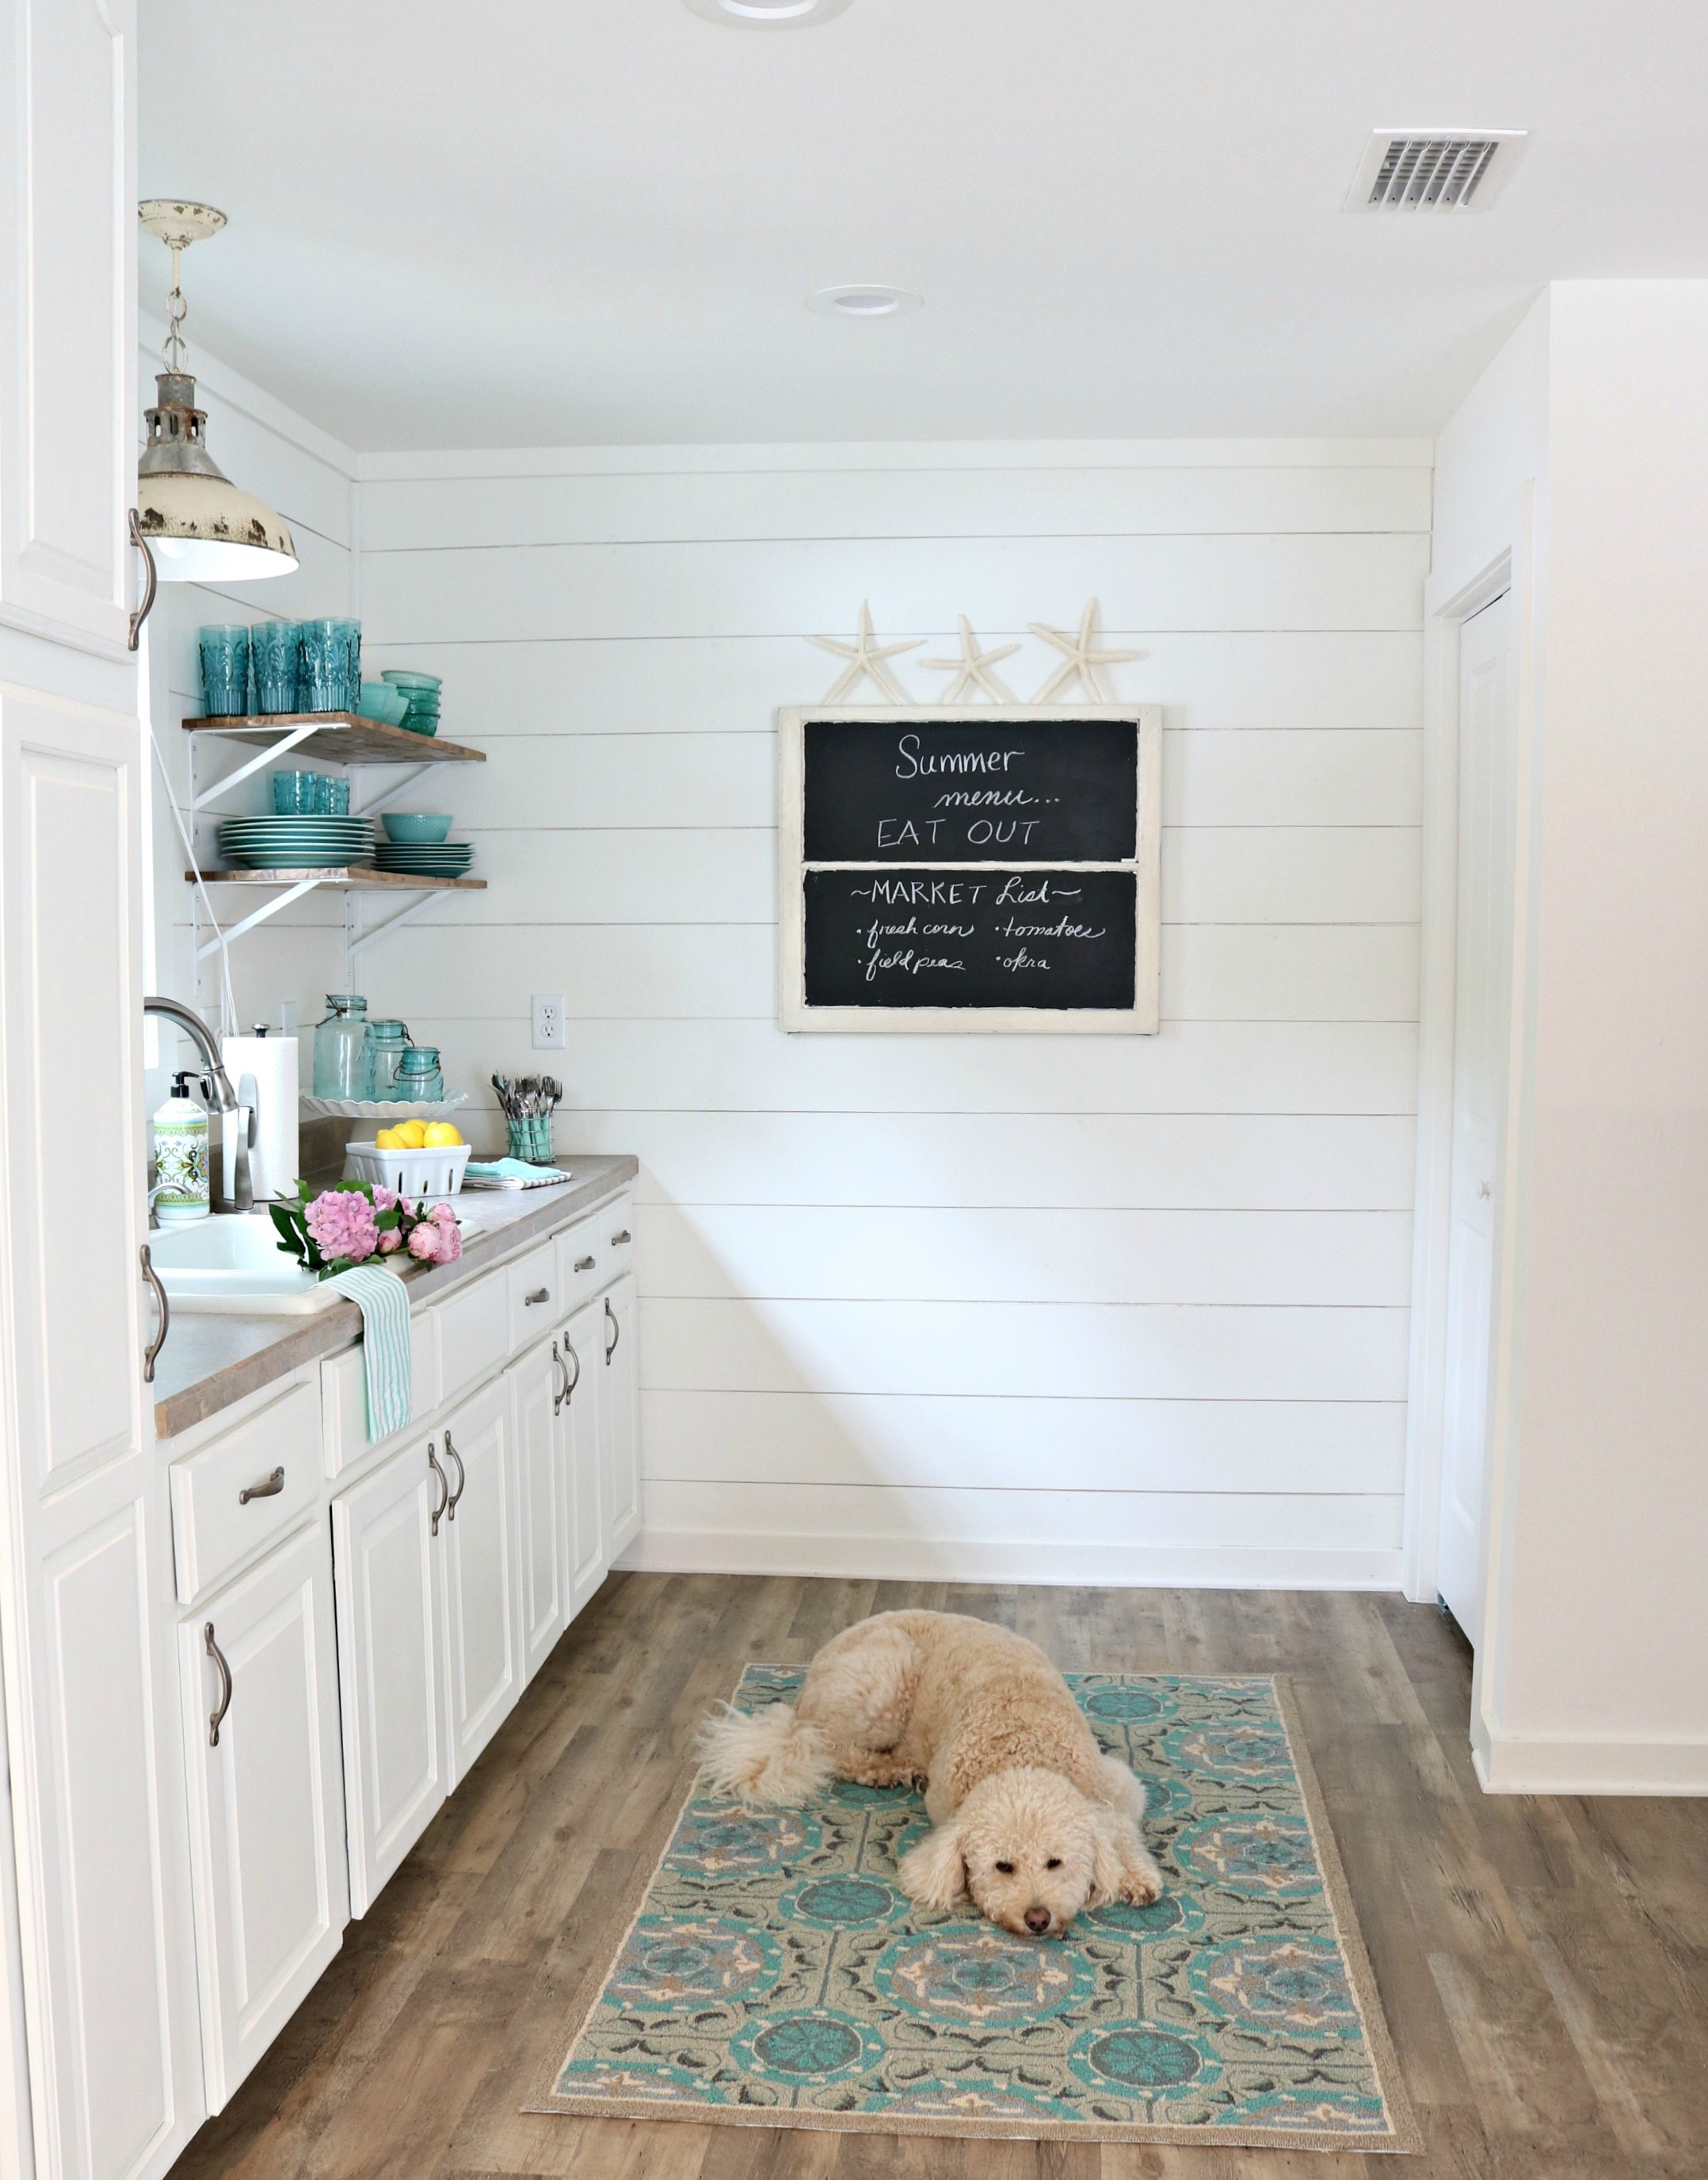 Tiny-kitchen-in-the-farmhouse-cottage-add-interest-with-a-shiplap-wall-or-two-at-Refresh-Restyle-1